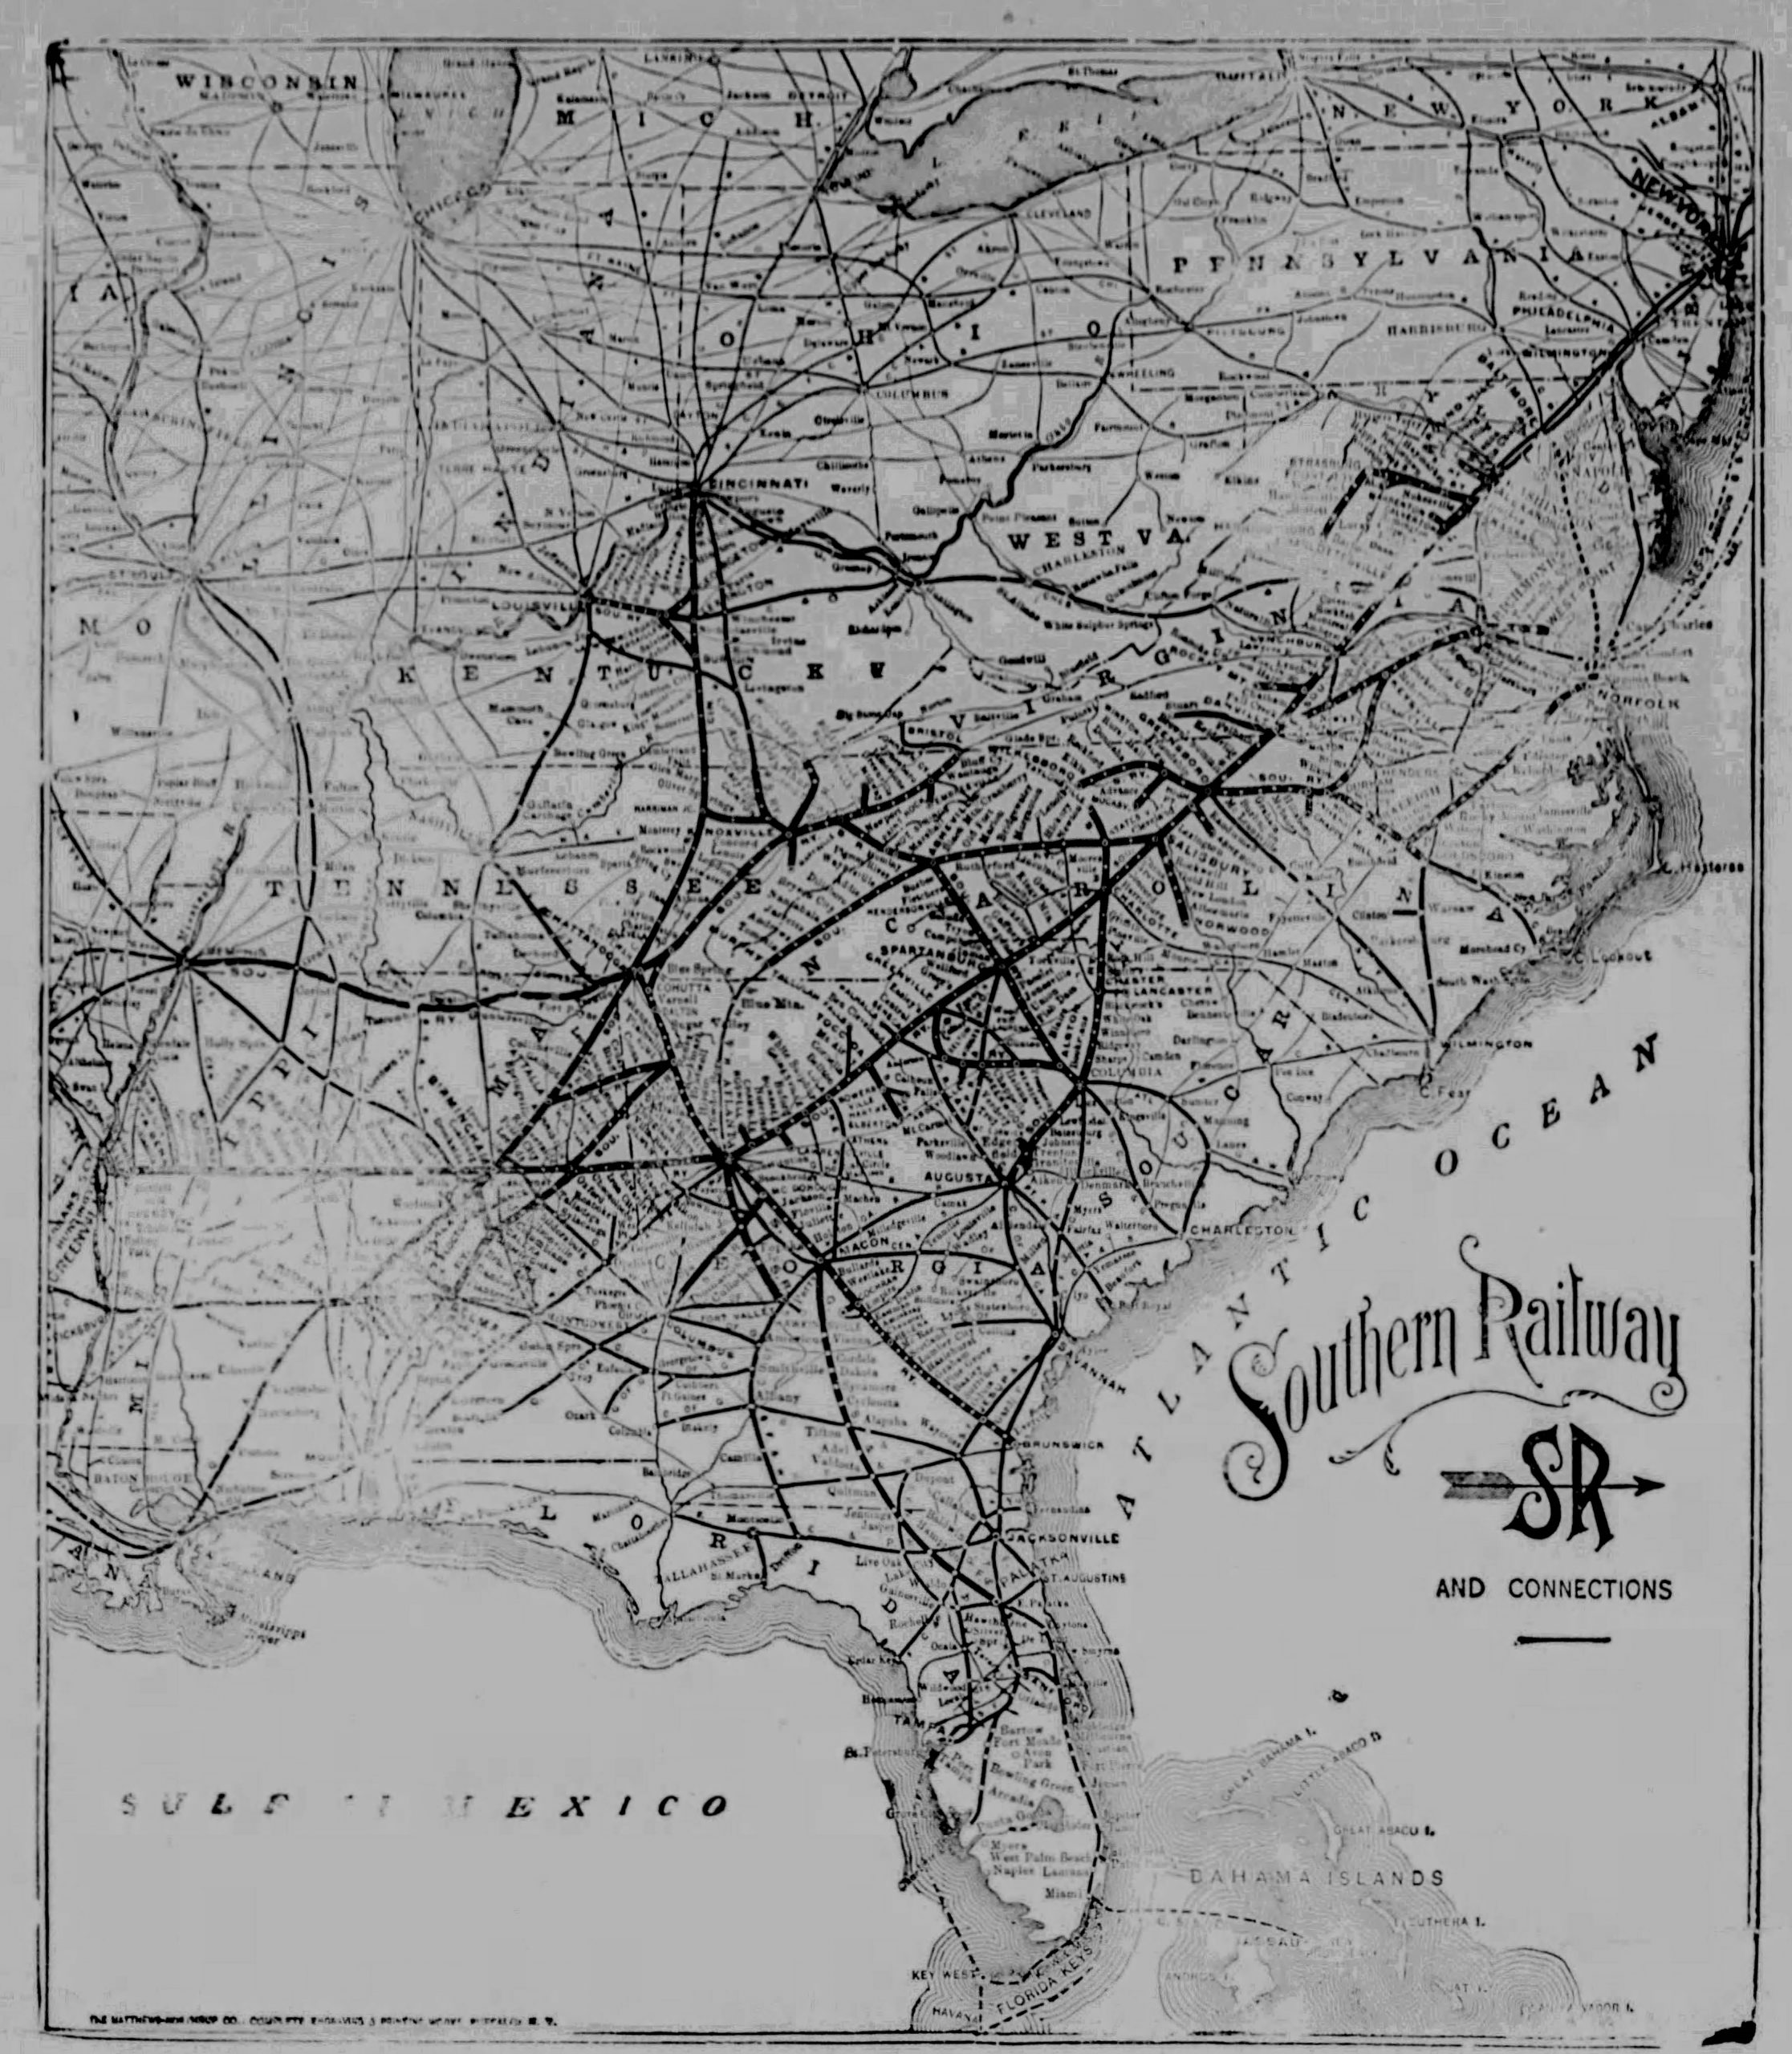 Part III Alabama Great Southern Railroad – Alabama was the leading mineral state of the South in 1899